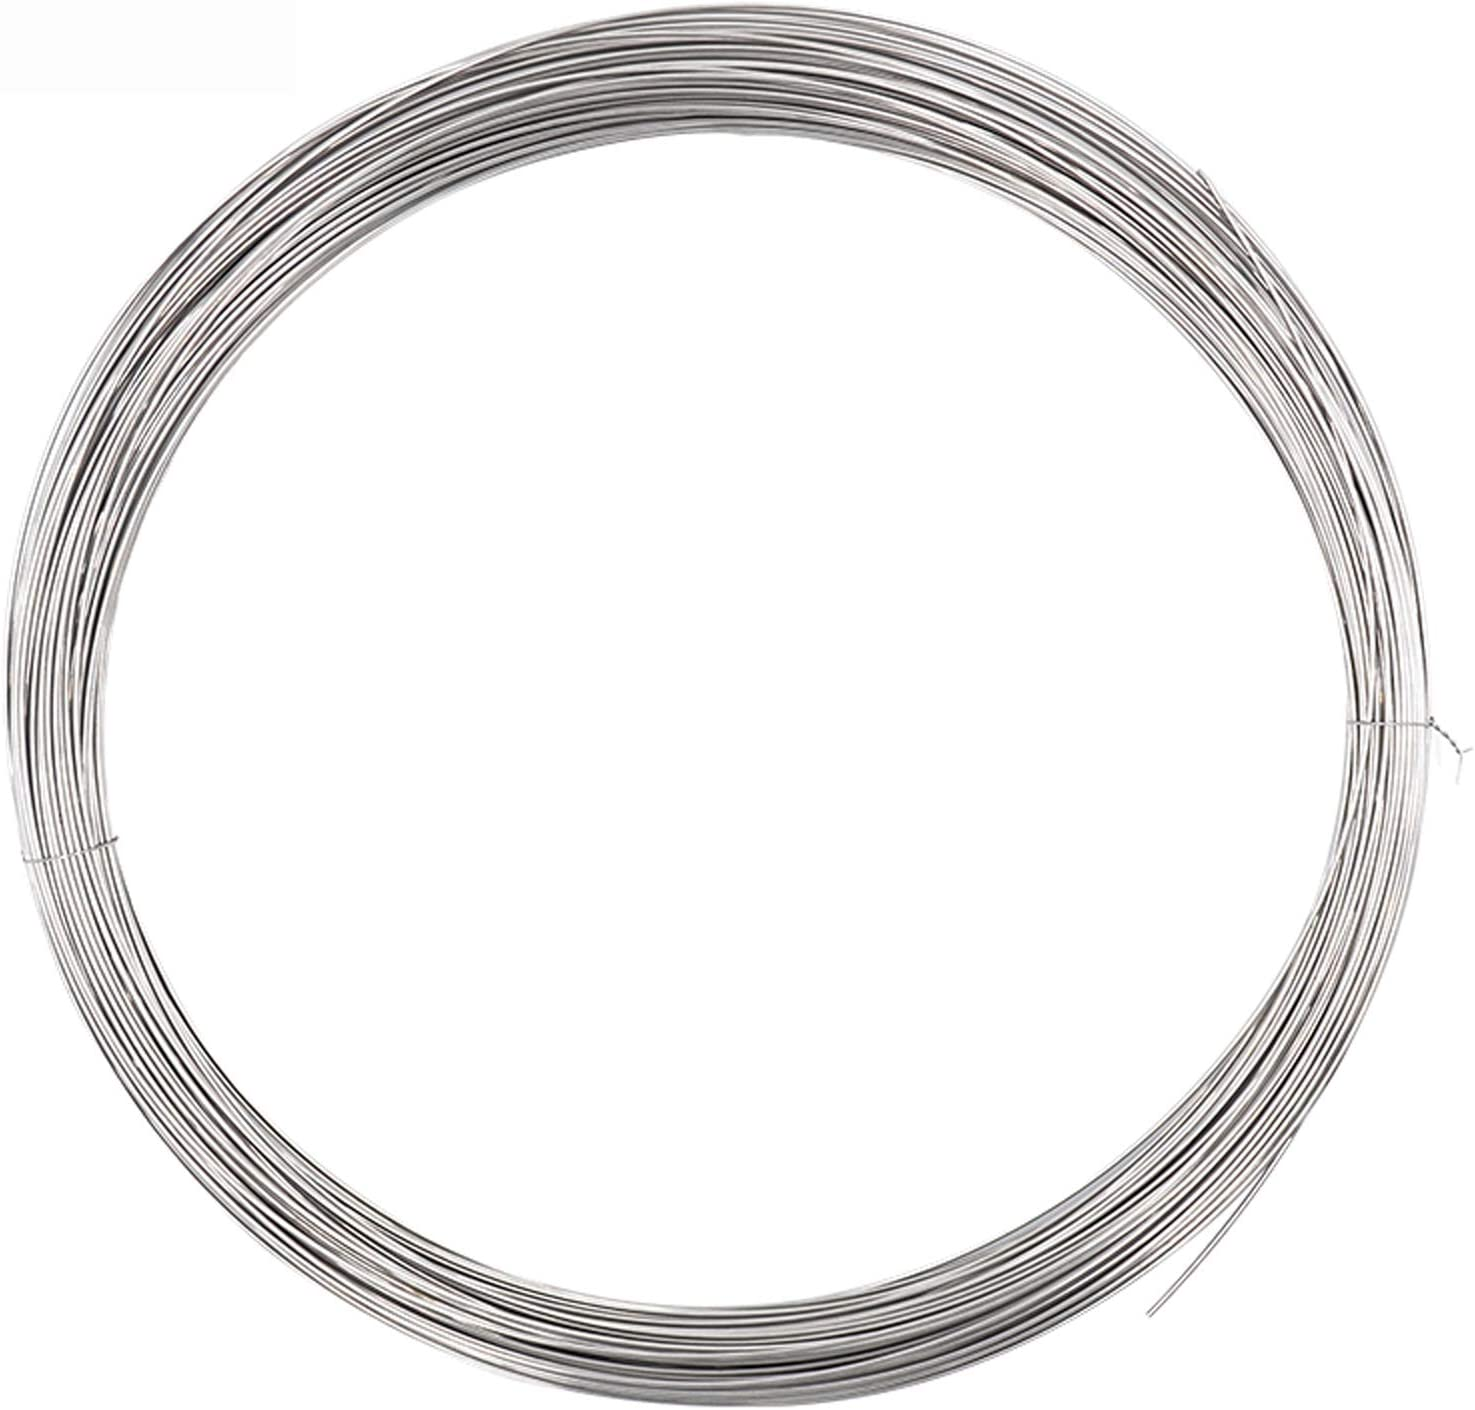 ,Diameter 1mm Diameter 1//1.2mm Length 20 Meters Suitable for Hardware Accessories IQQI 304 Stainless Steel Wire Medium Hard Wire